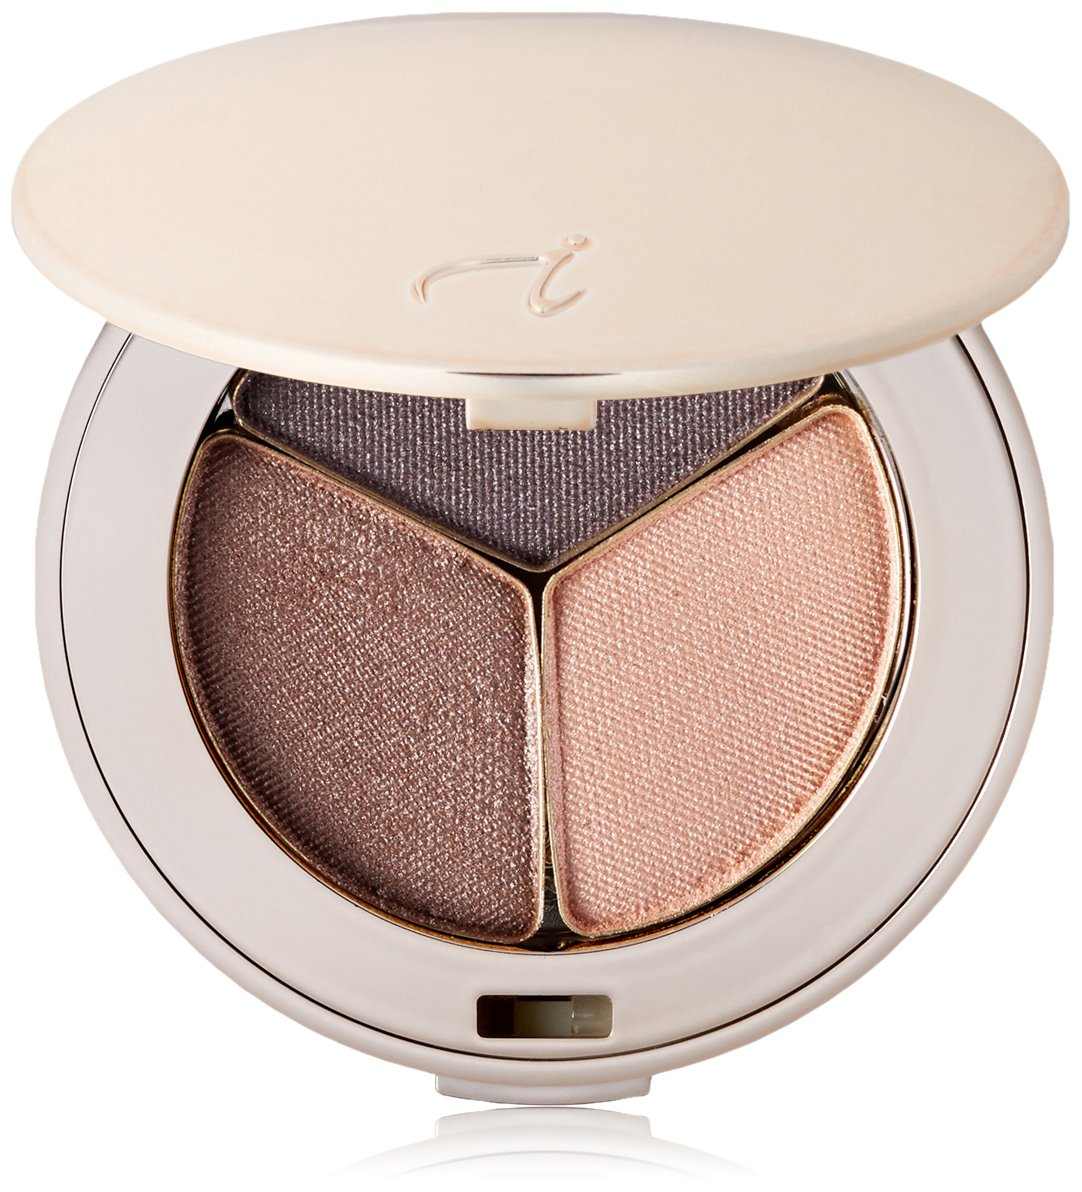 jane iredale PurePressed Eye Shadow Triple, Brown Sugar, 0.10 oz.